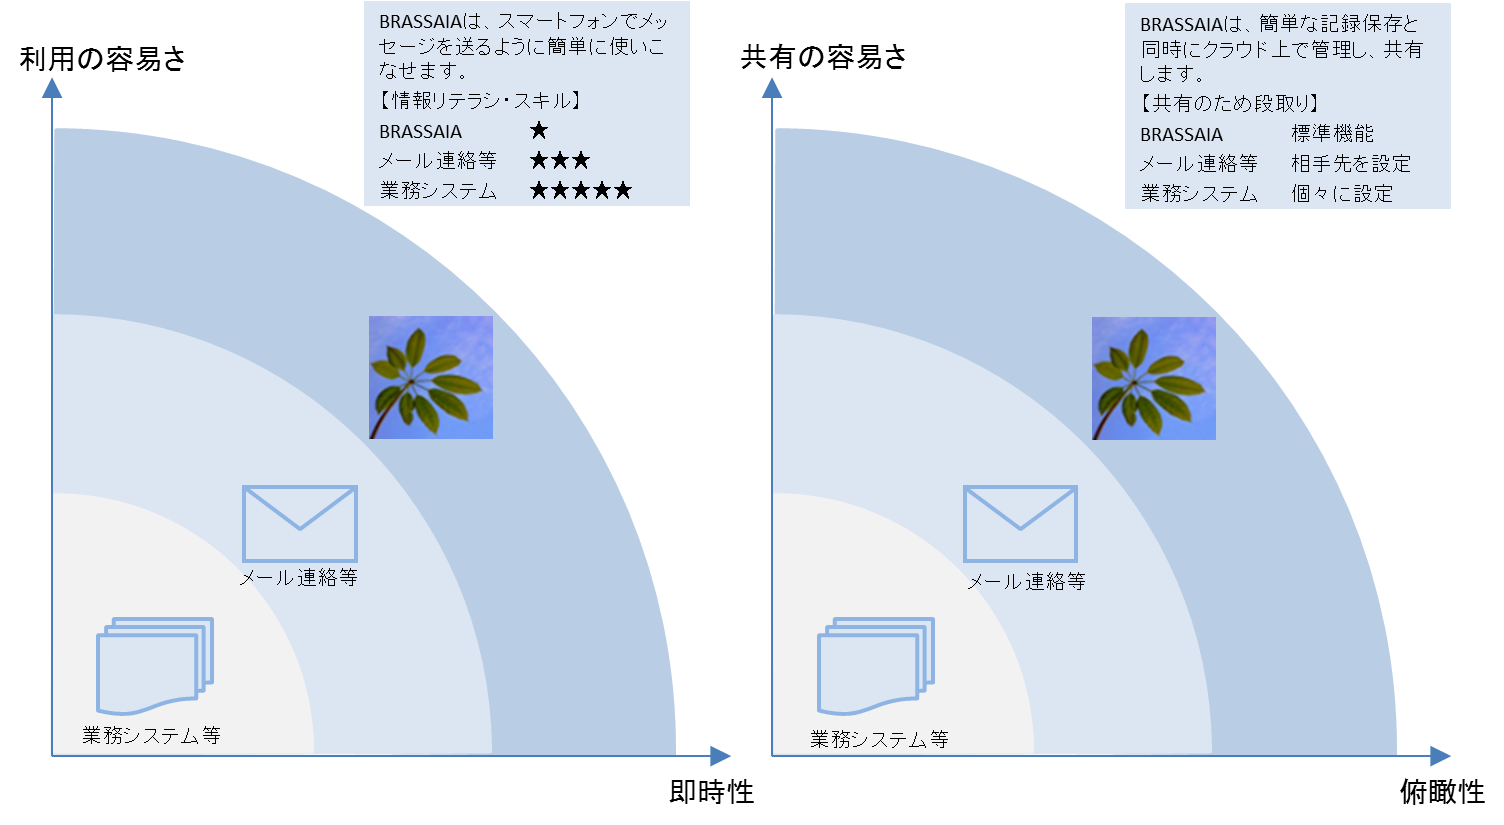 20150803_BR-map